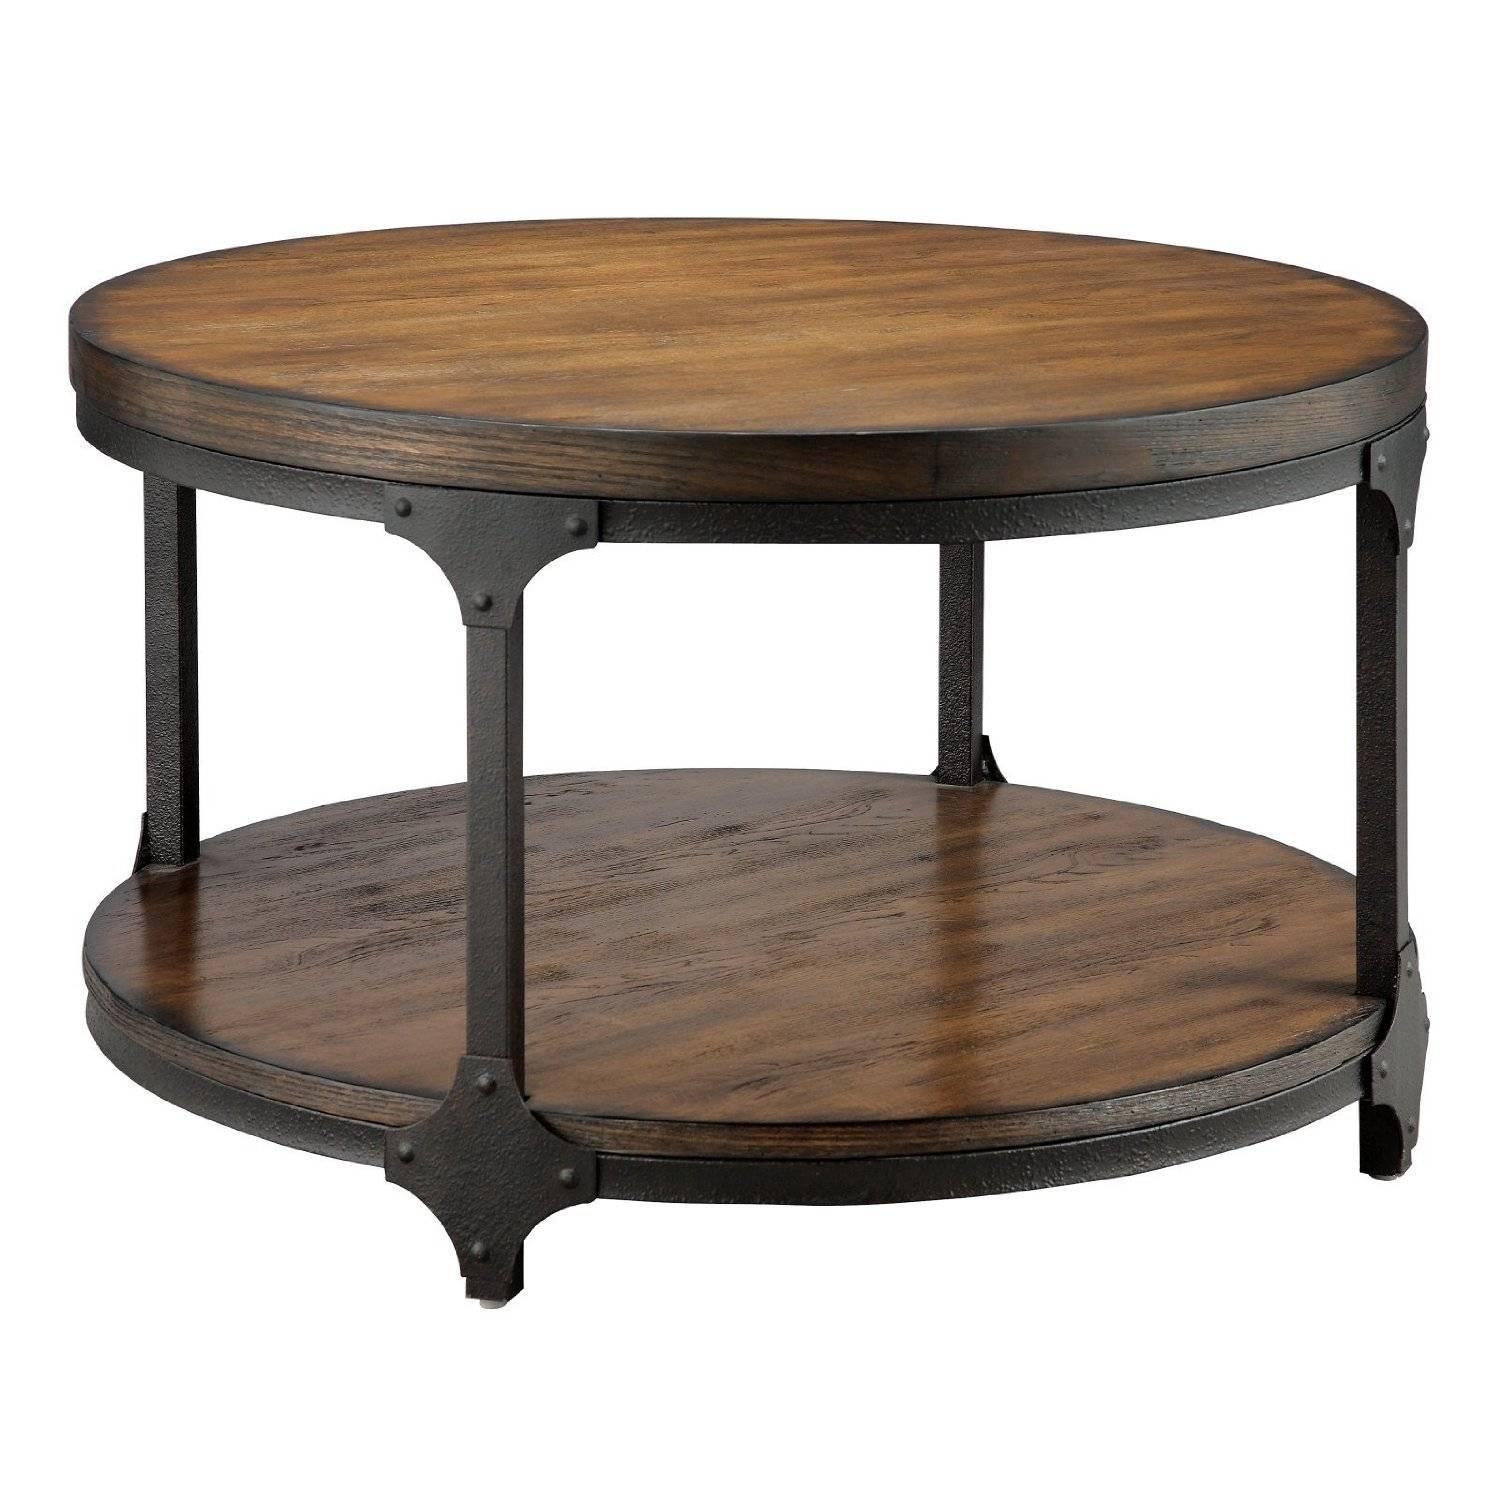 Rustic Circle Coffee Table | Coffee Tables Decoration with Round Oak Coffee Tables (Image 29 of 30)